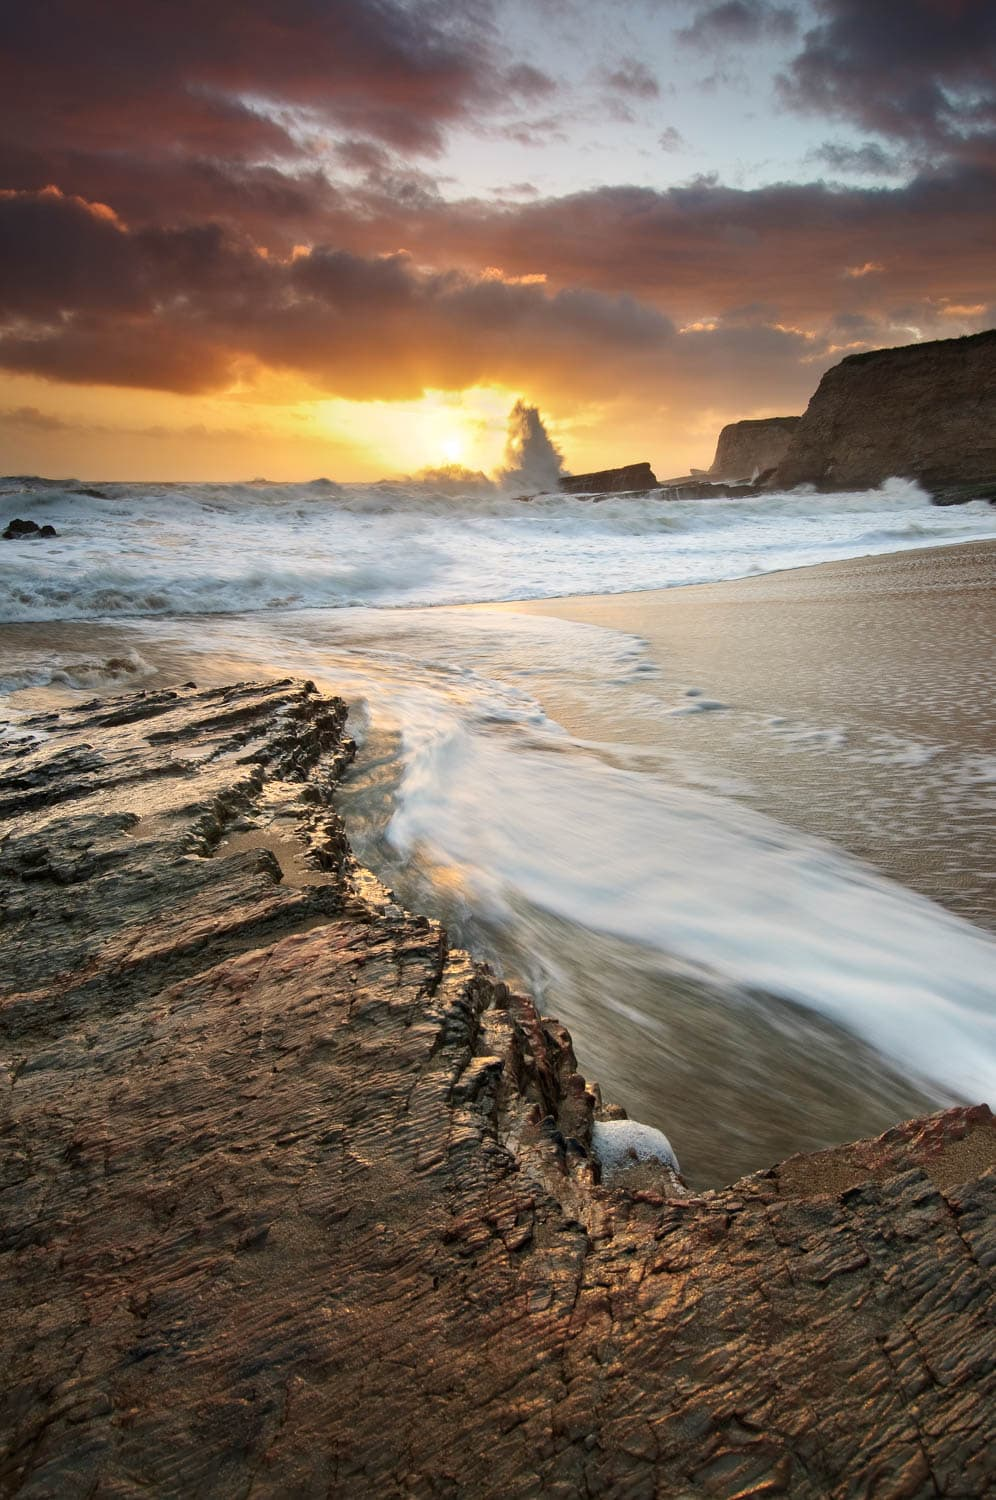 Dramatic coastal sunset landscape image